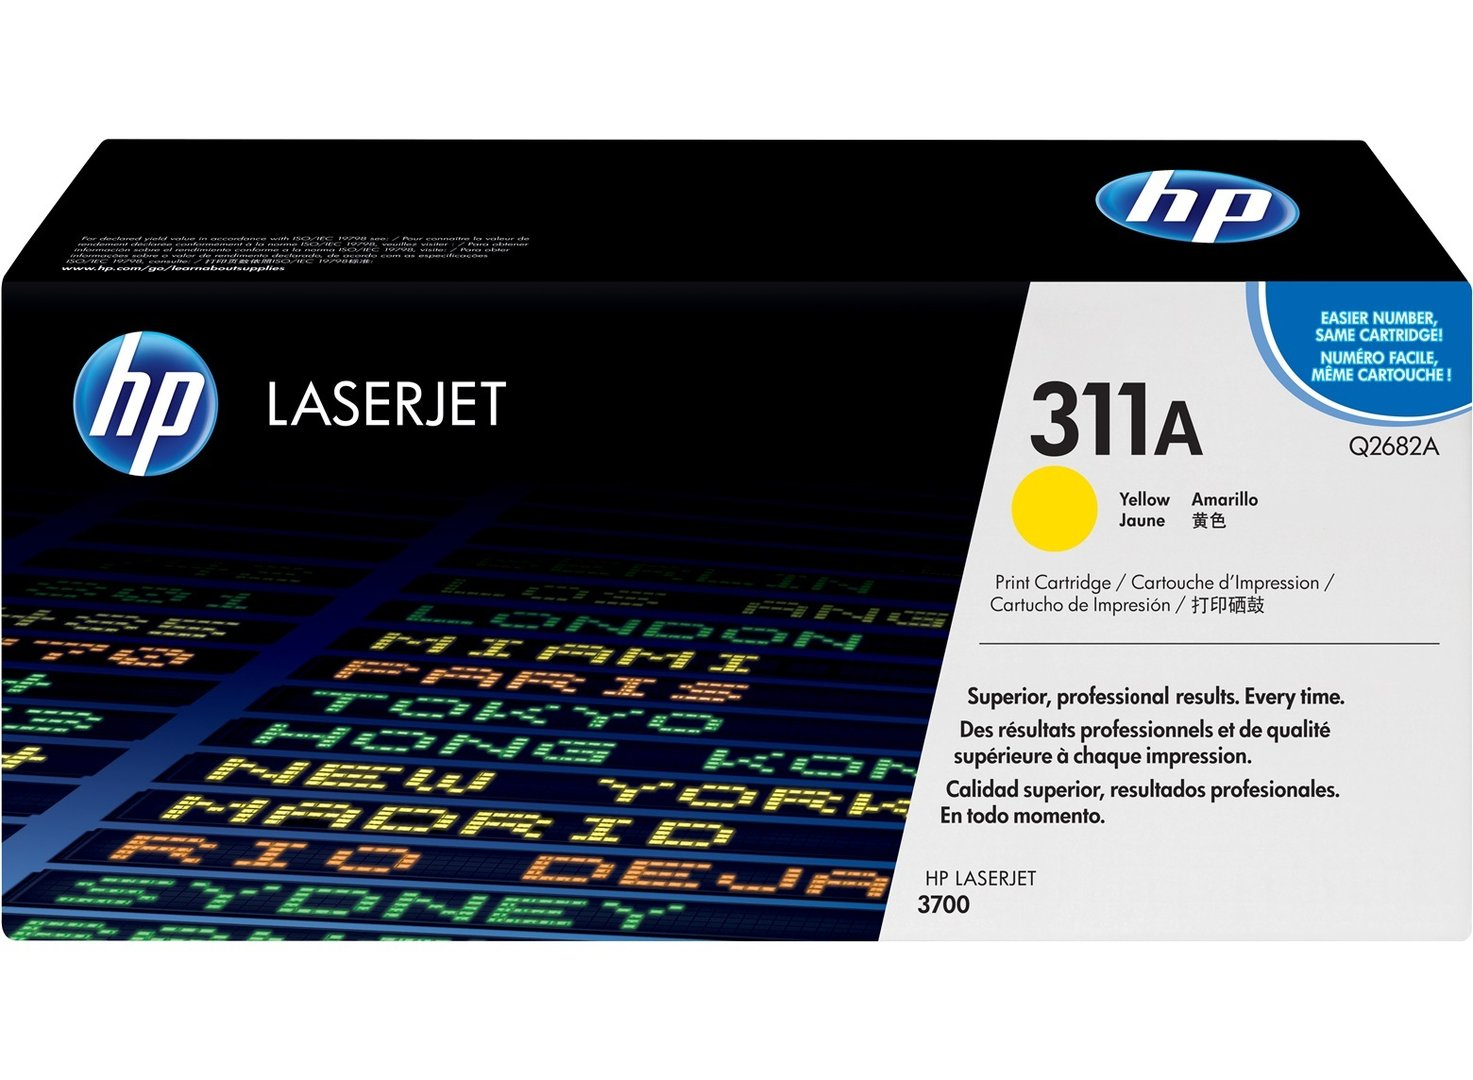 Related to HP 3700N: Q2682A